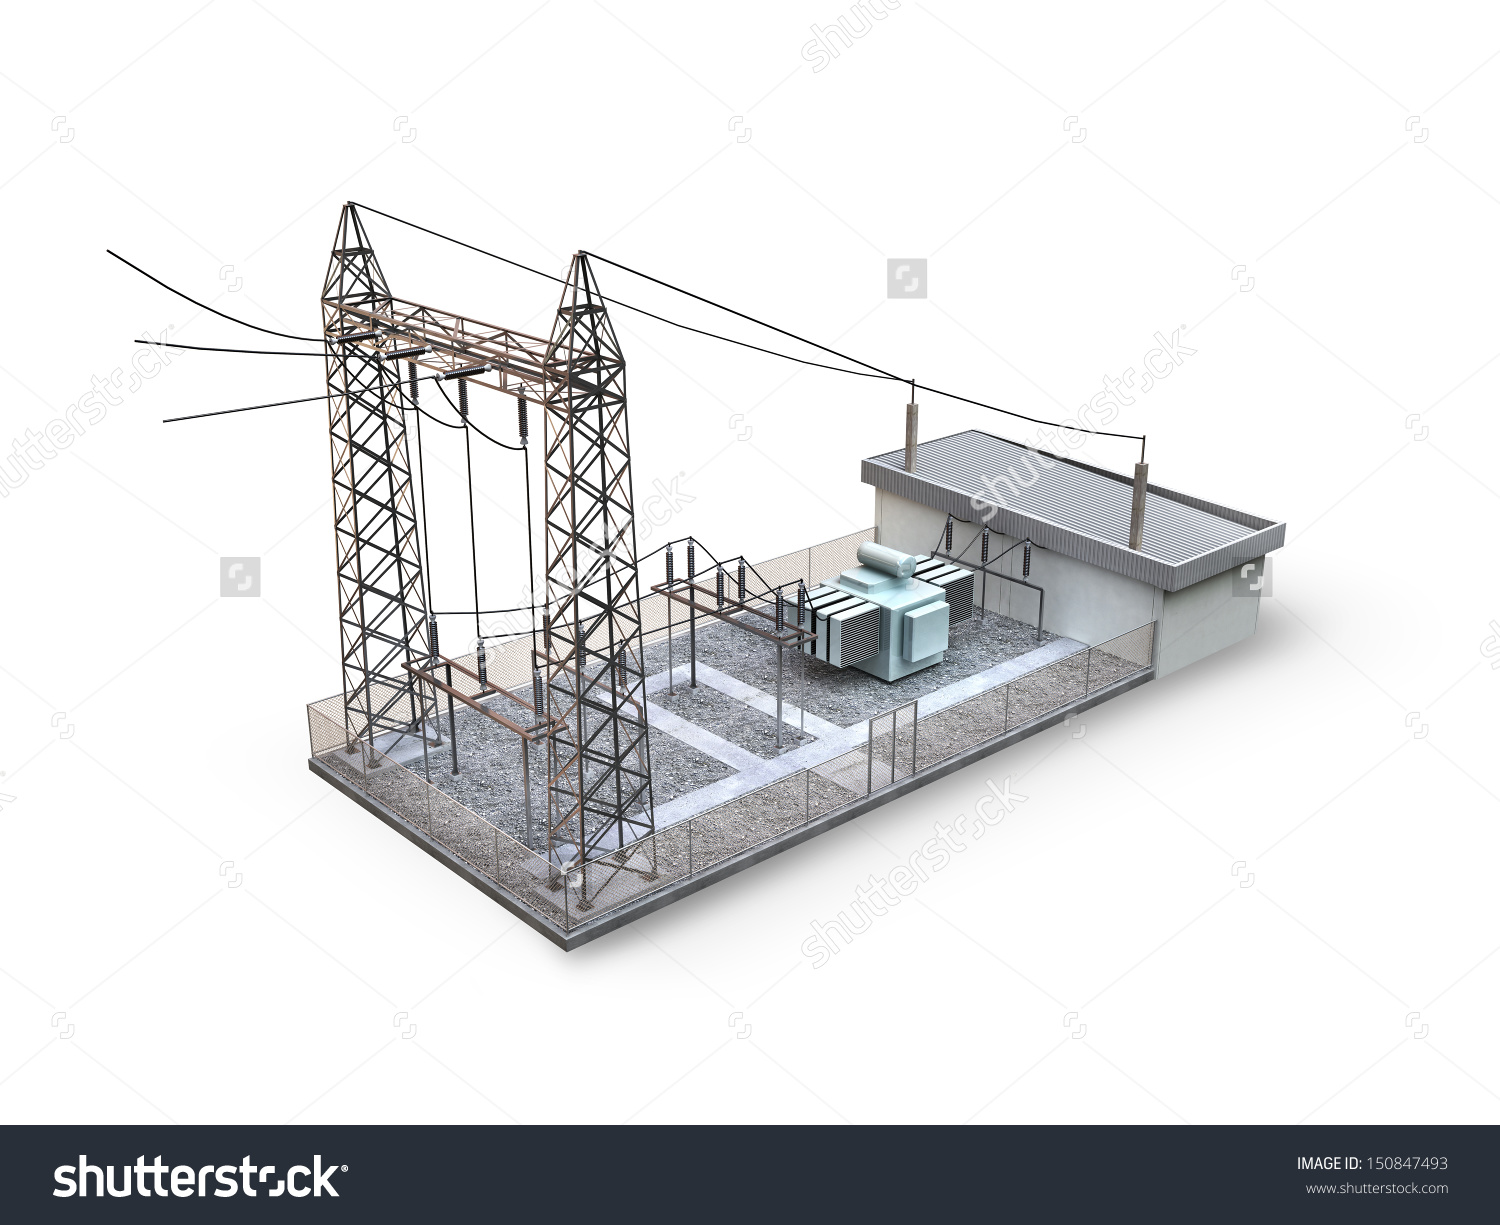 Substation Isolated On White Background Stock Illustration.